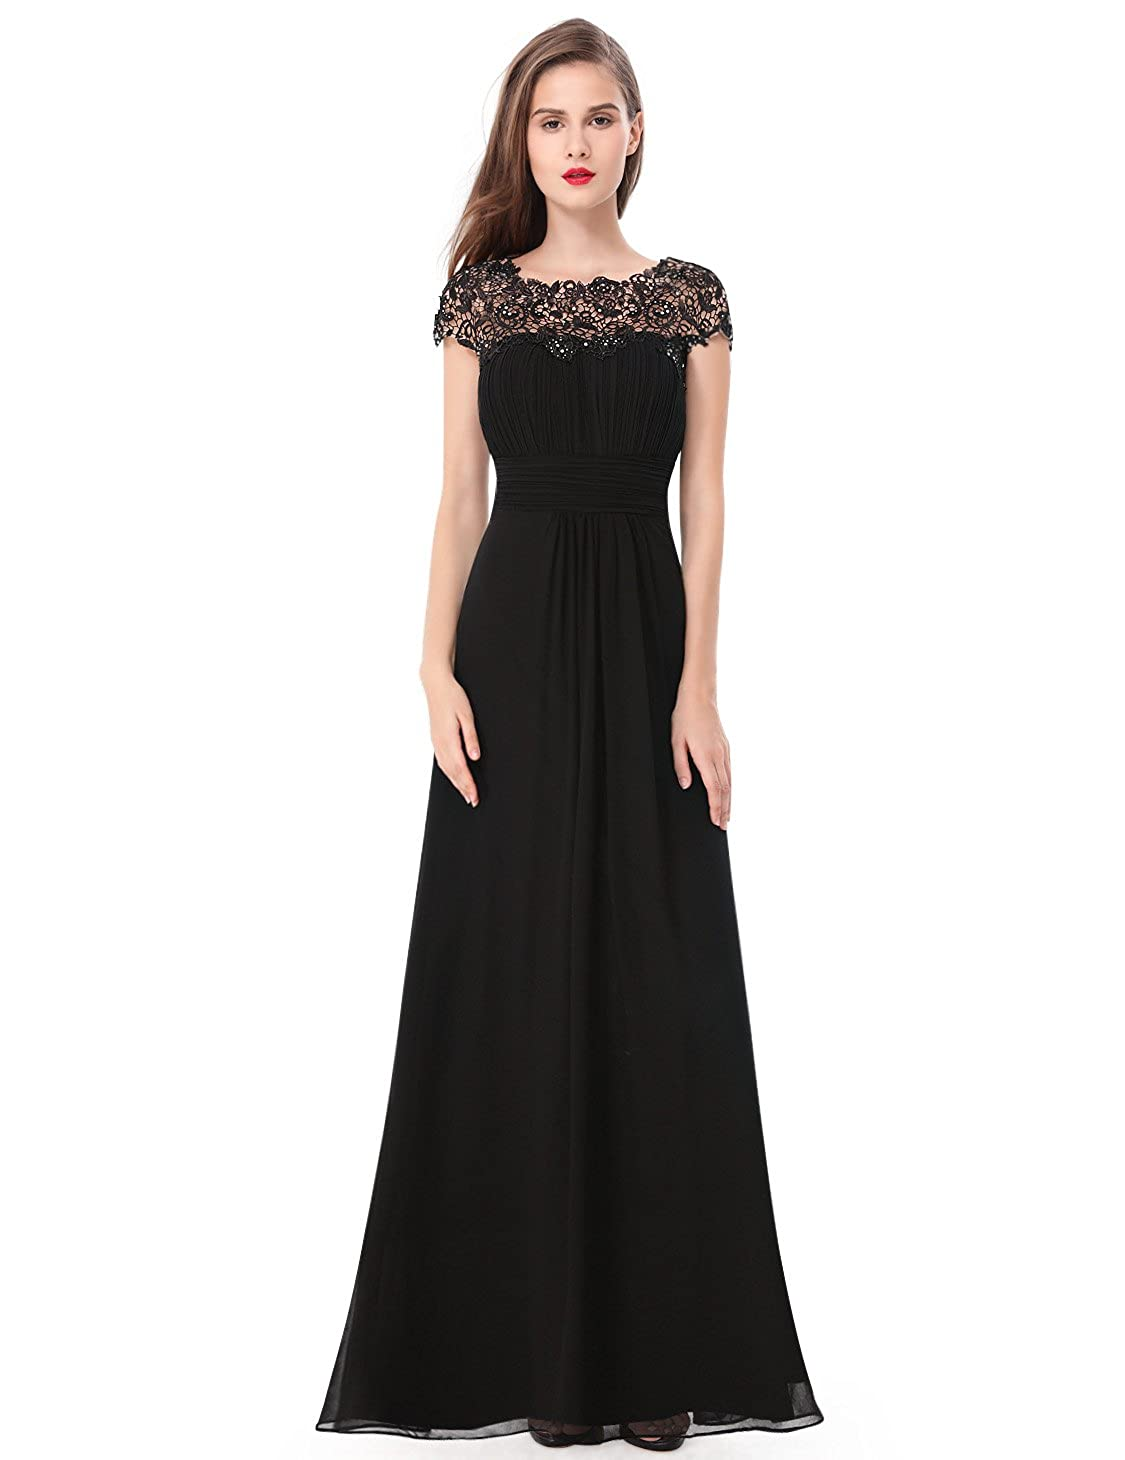 b29954b3190a Ever-Pretty Womens Cap Sleeve Lace Neckline Ruched Bust Evening Gown 09993  at Amazon Women's Clothing store: